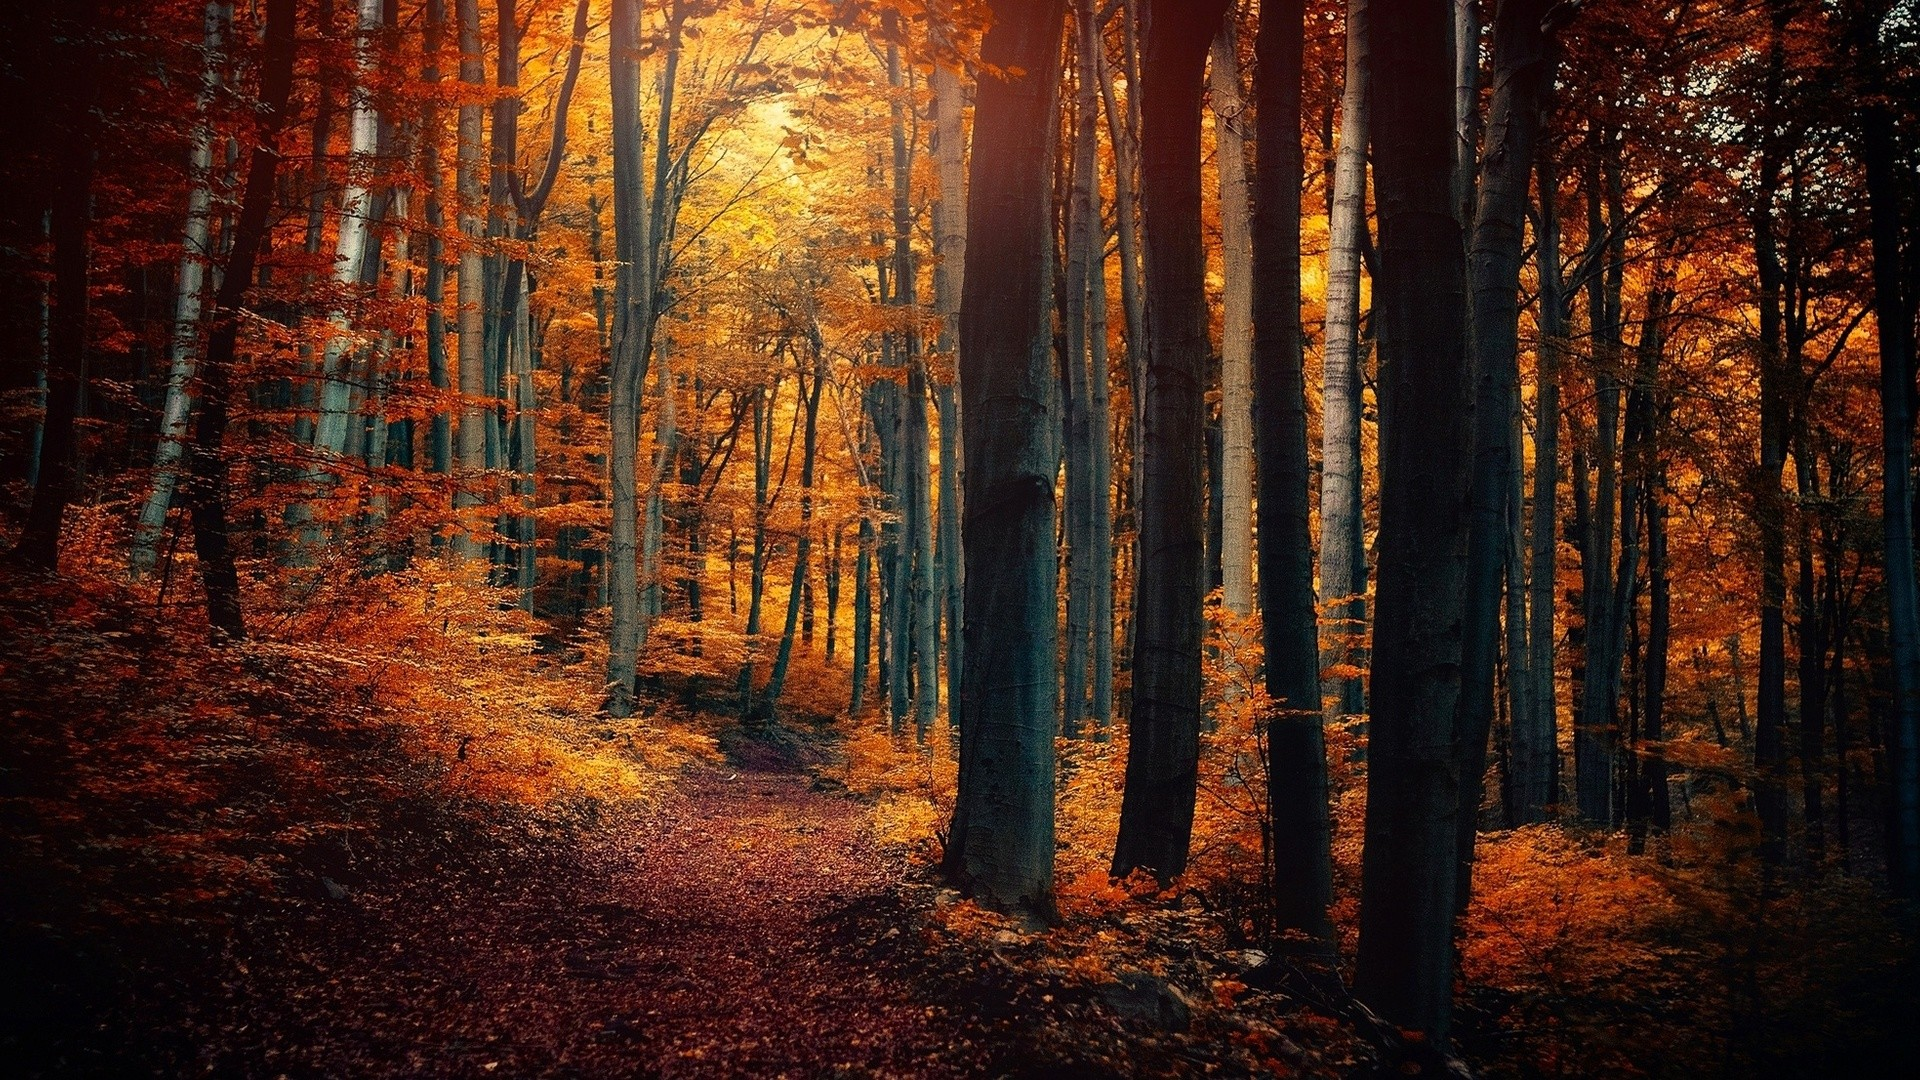 General 1920x1080 nature landscape trees forest fall